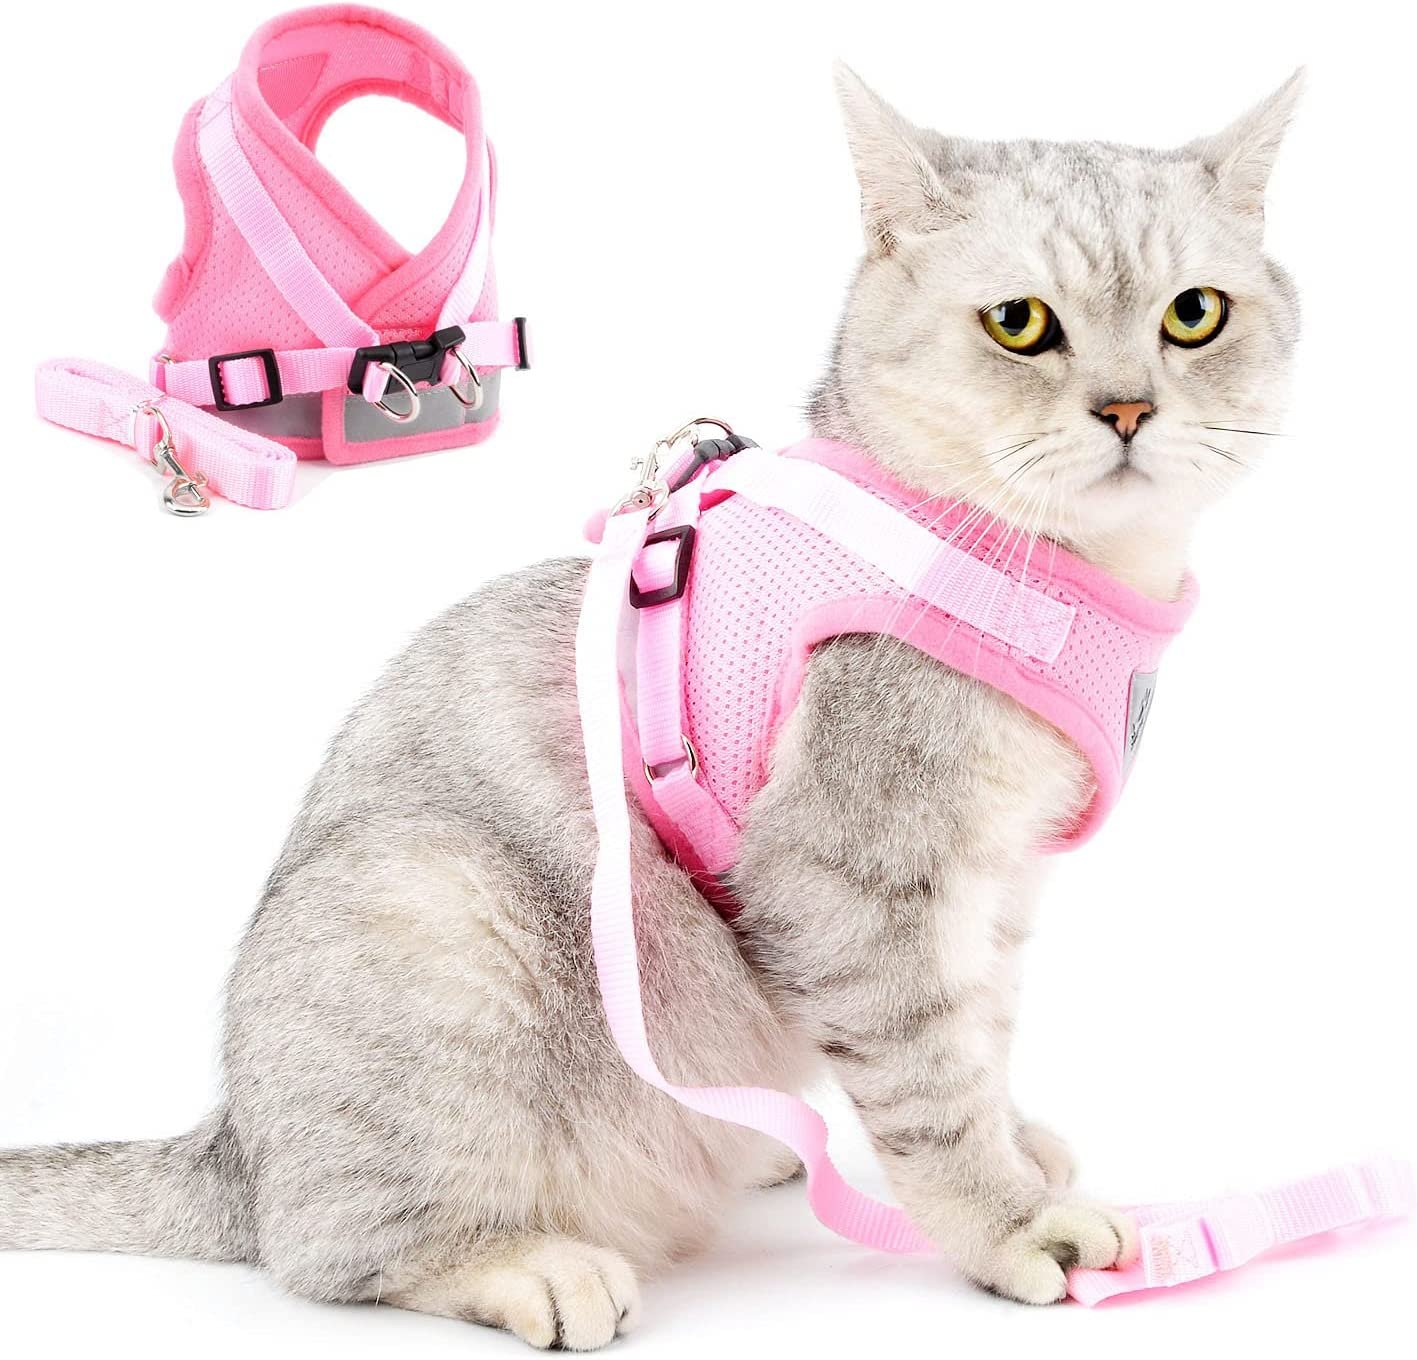 SELMAI Soft Mesh Harness for Cats Max 45% OFF No Pull St Reflective Import Choke